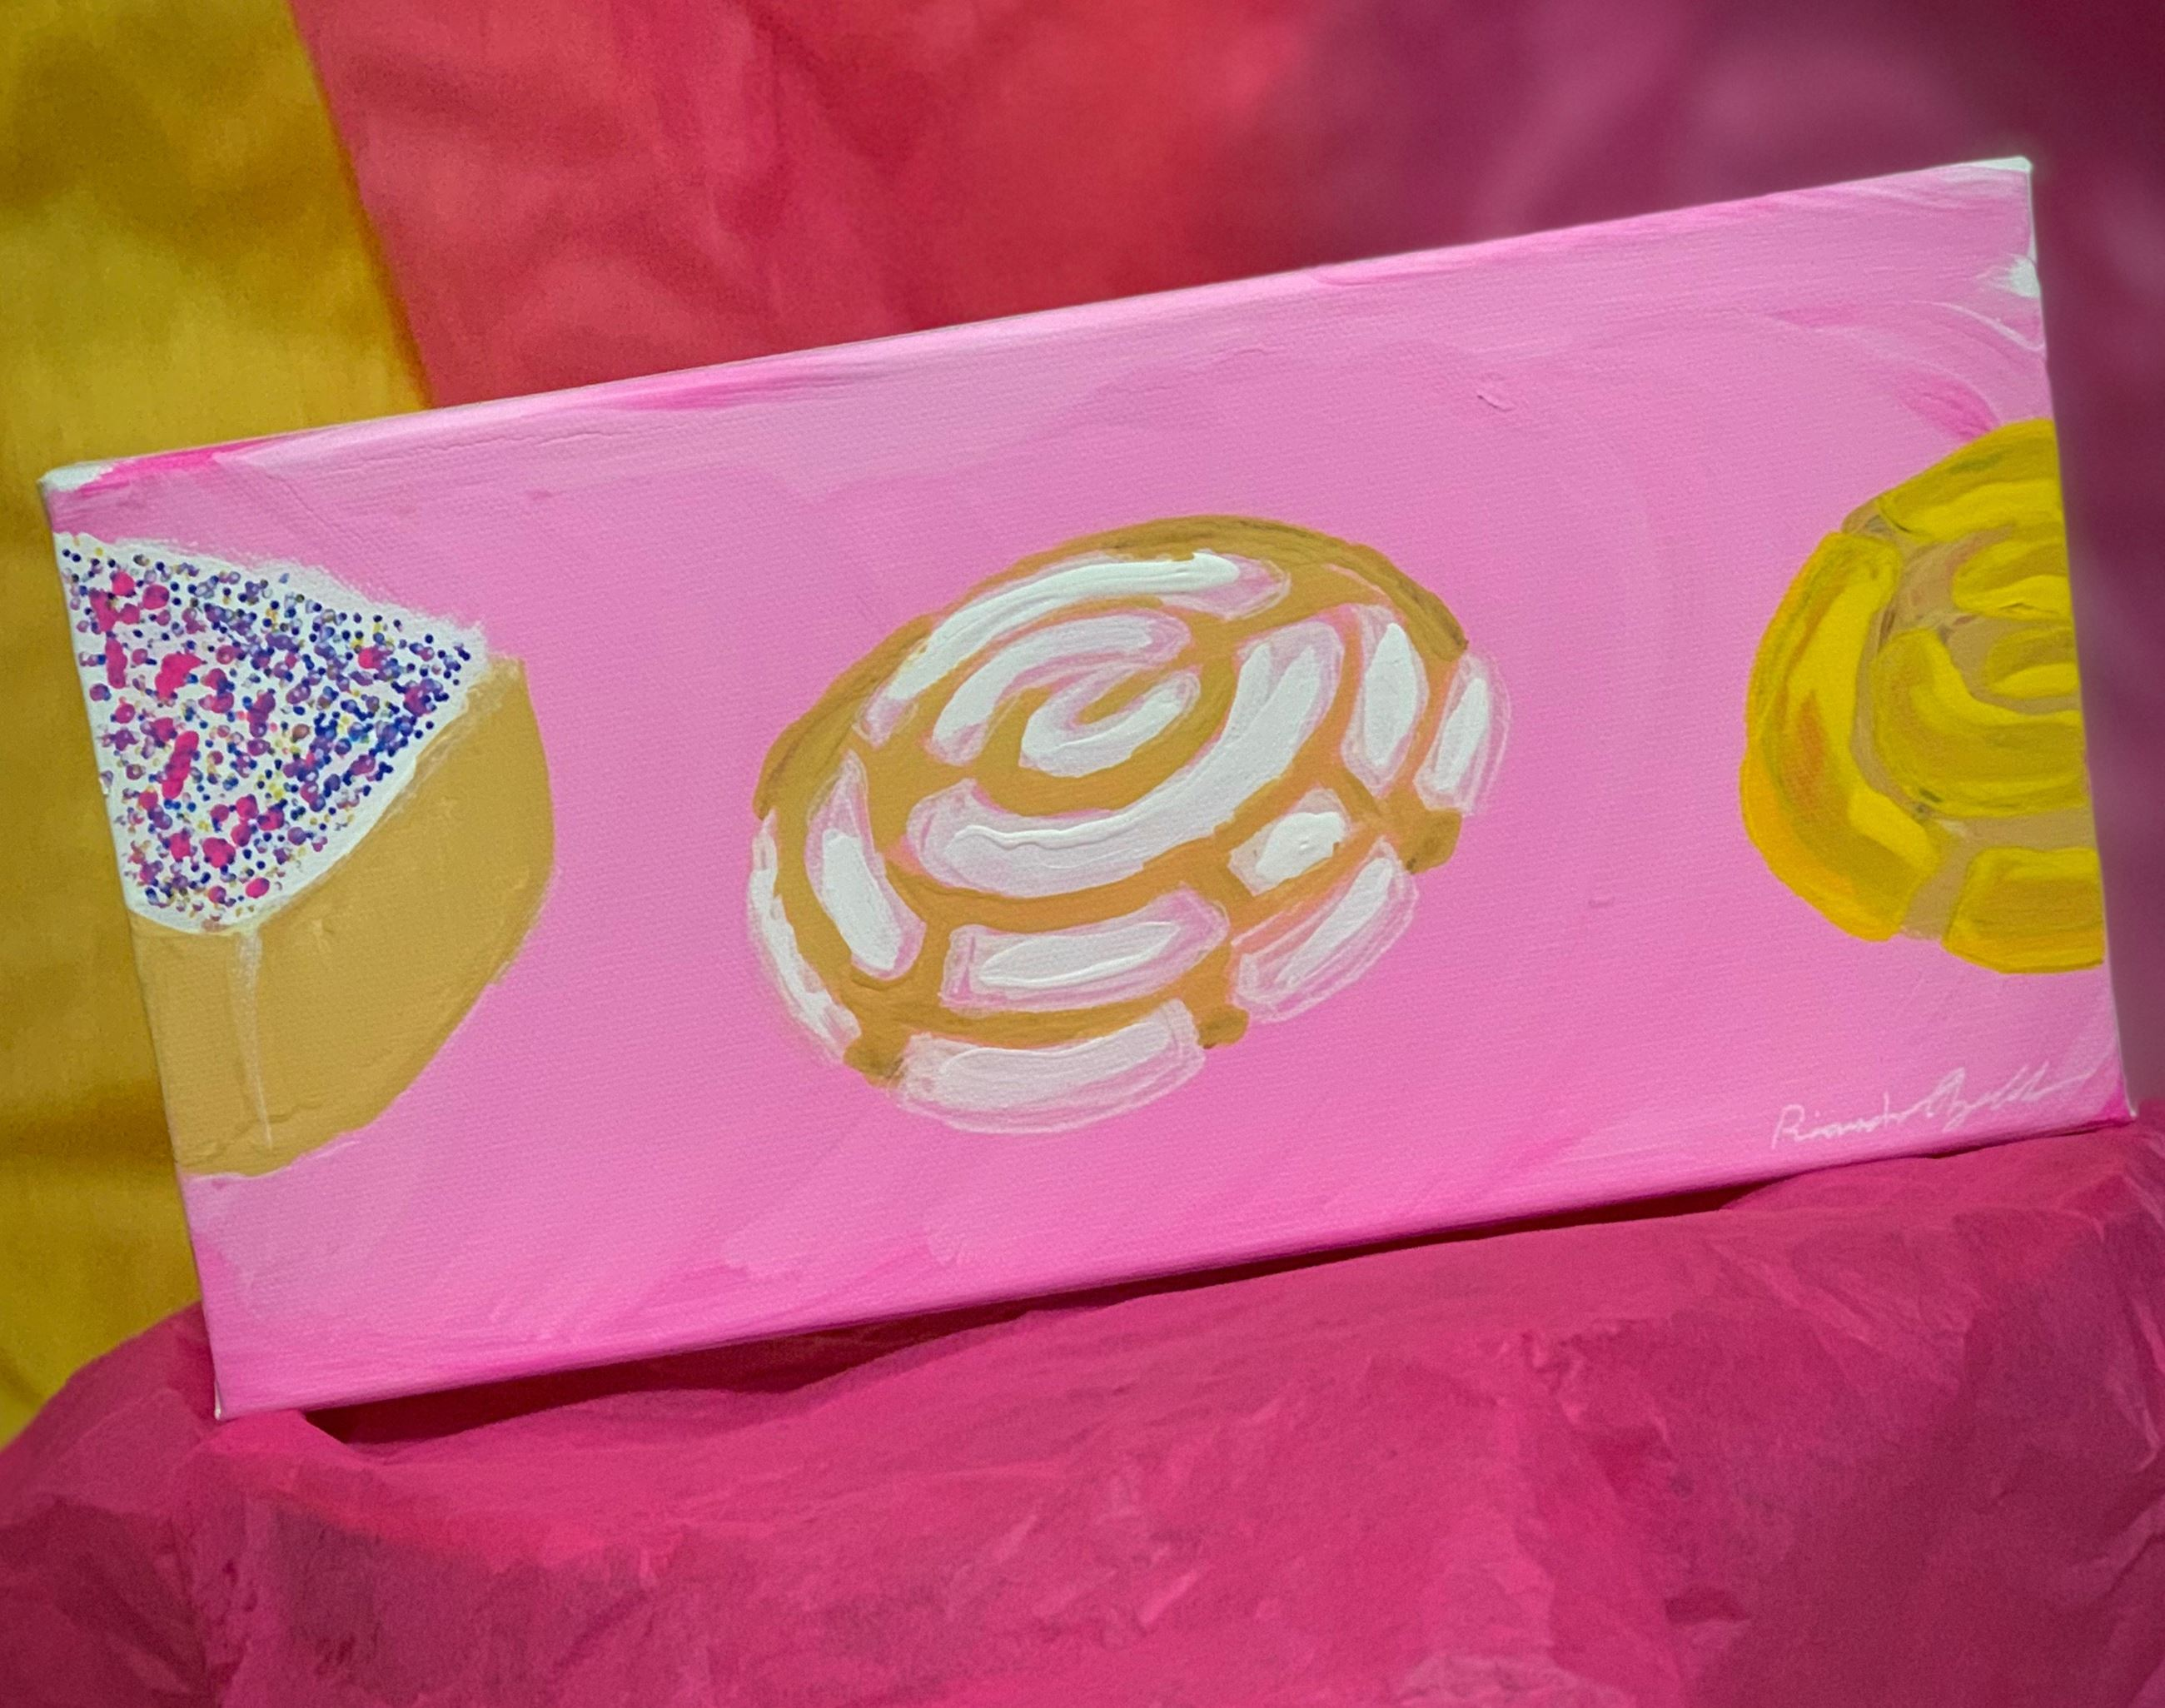 painting of pan dulce